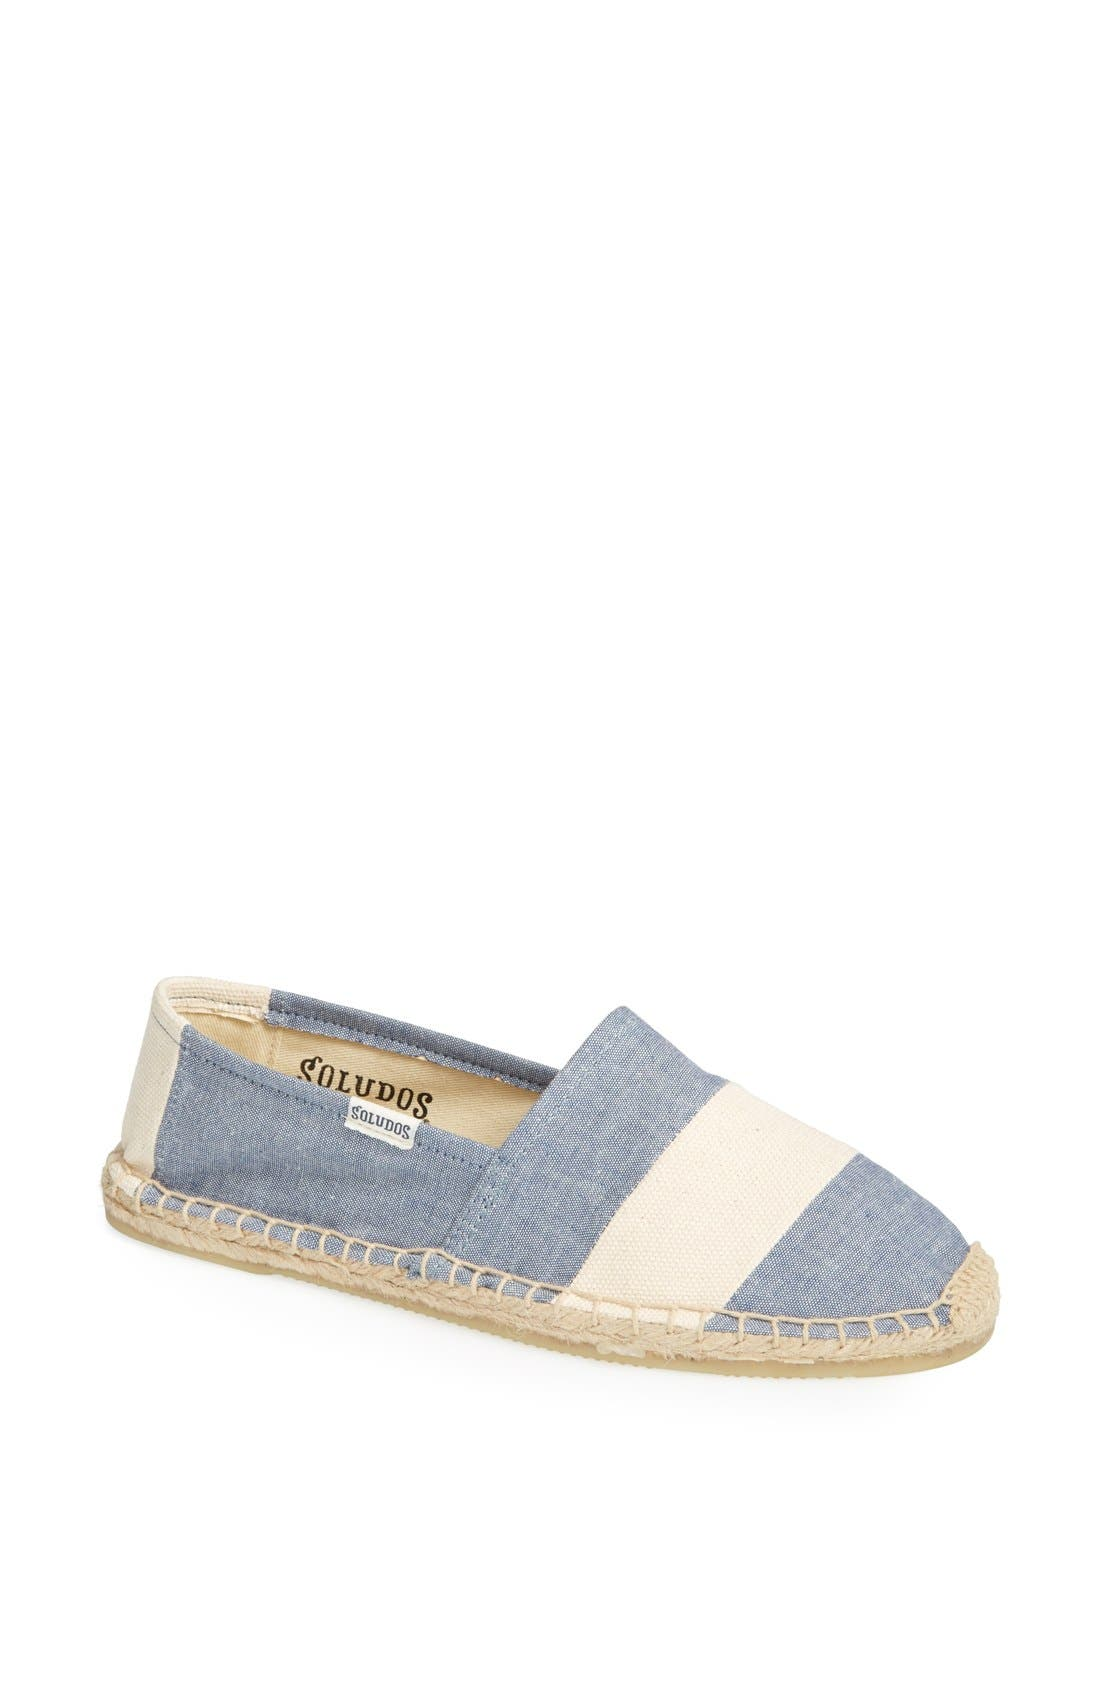 Alternate Image 1 Selected - Soludos 'Barca' Stripe Espadrille (Women)